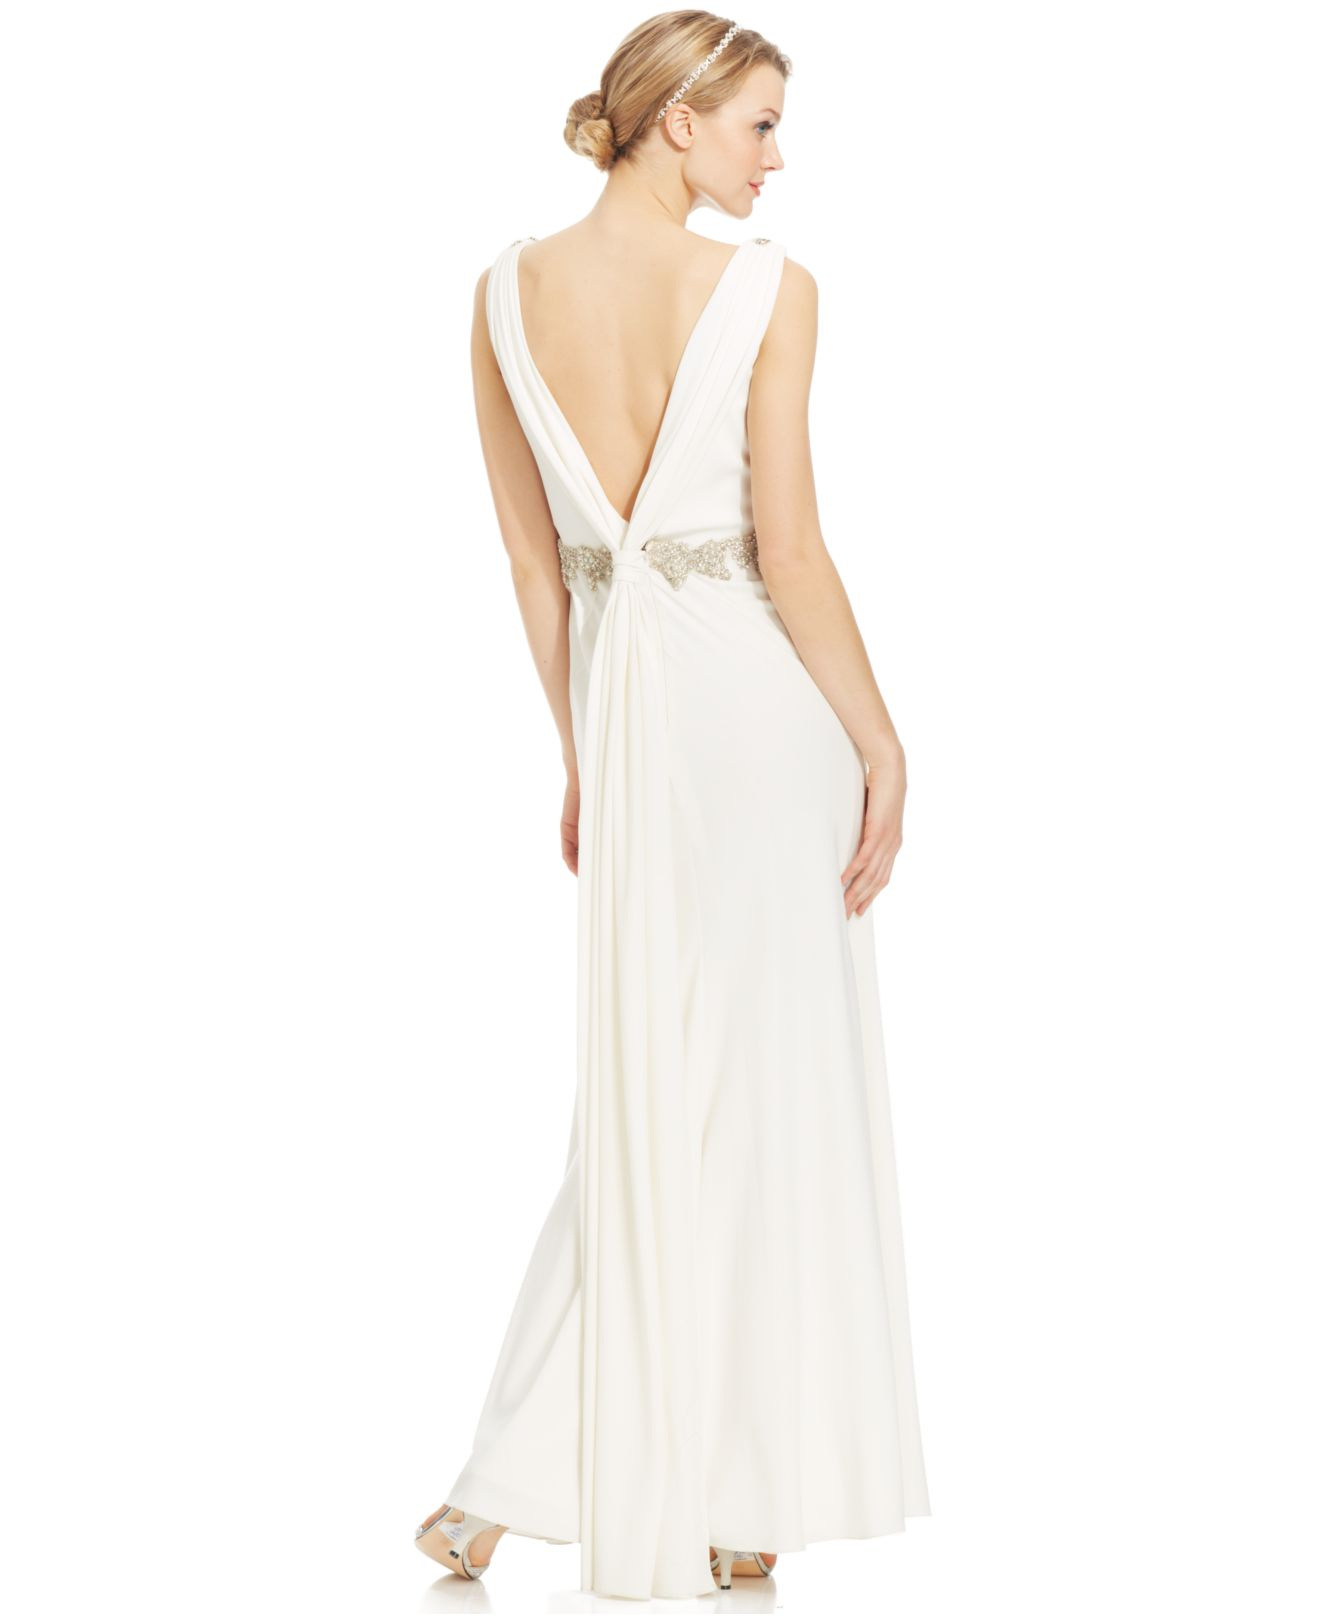 Lyst - Js Collections Beaded V-Back Gown in Natural